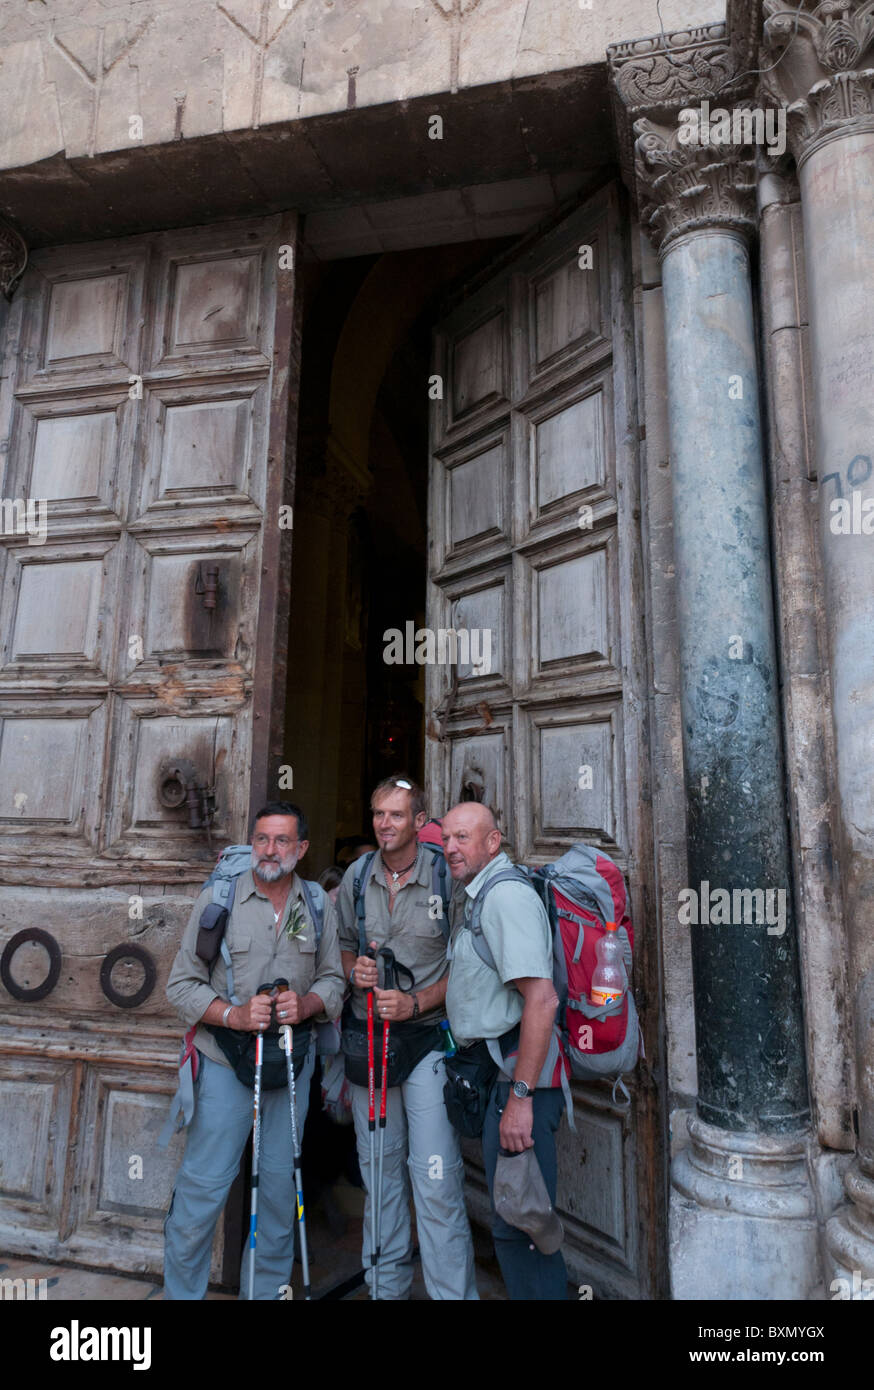 Group of austrian pilgrims with backpack entering the church of the Holy Sepulche. Jerusalem Old City - Stock Image